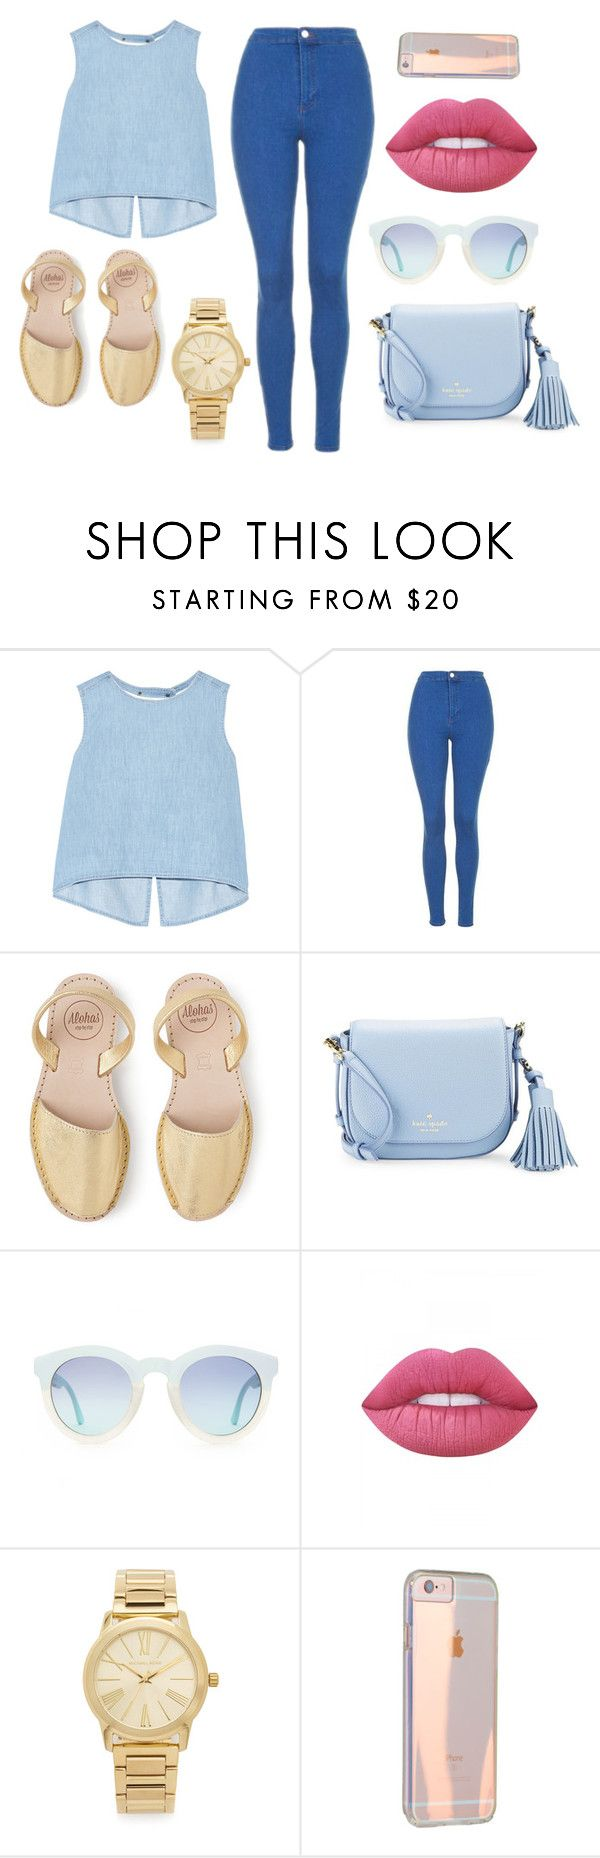 """""""Sin título #13"""" by sarai-almaguer on Polyvore featuring moda, Steve J & Yoni P, Topshop, Kate Spade, Lime Crime y Michael Kors"""